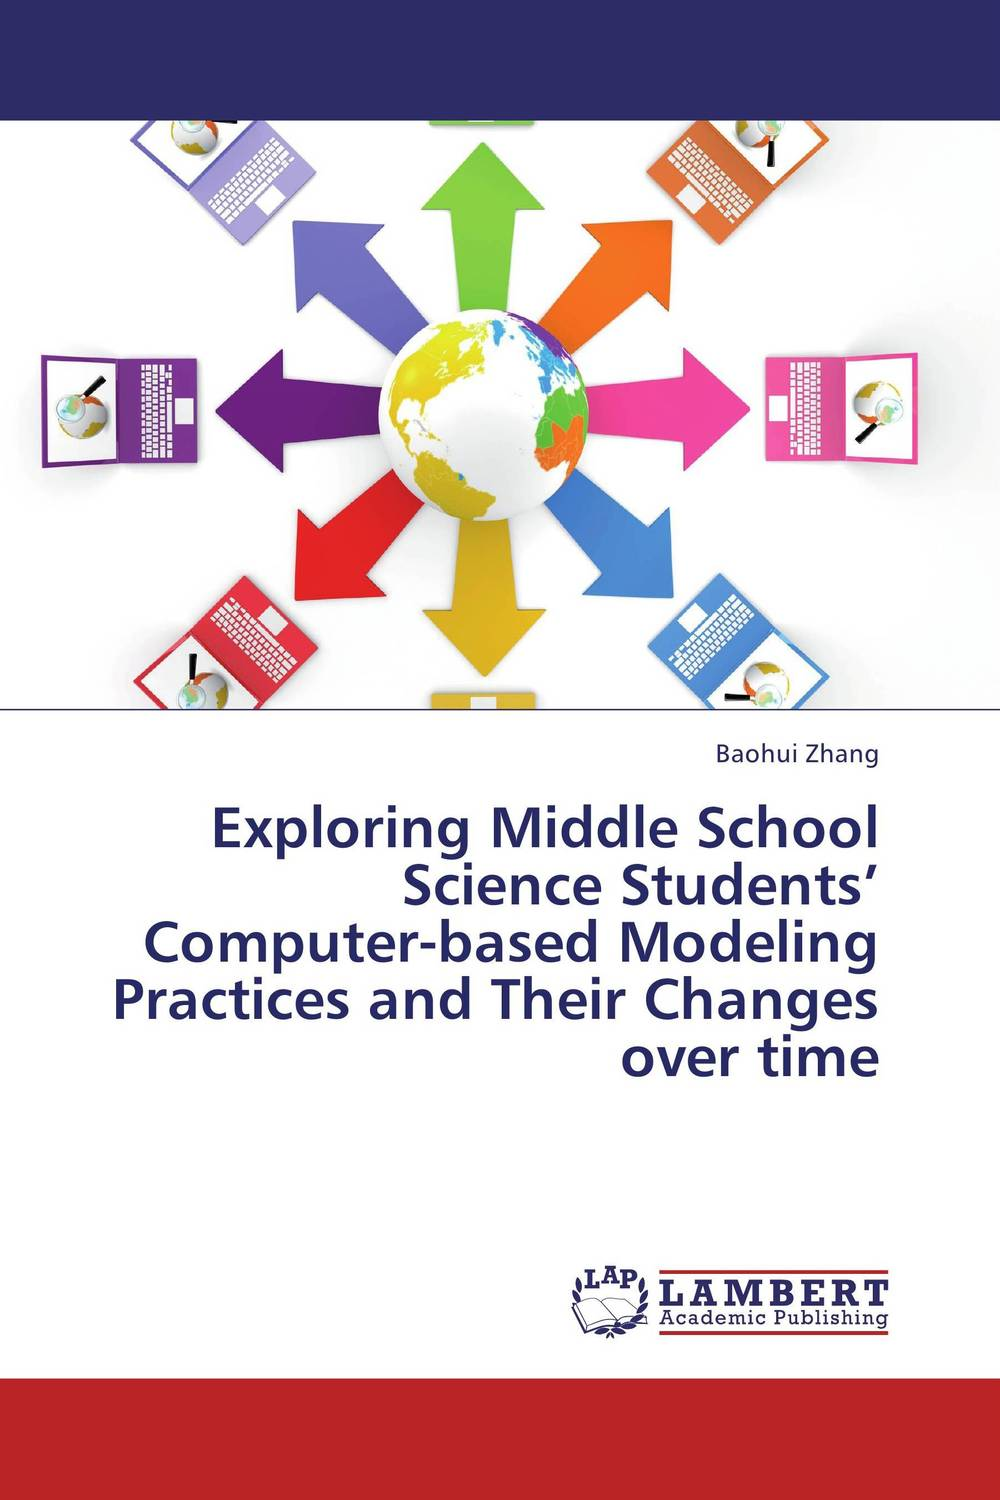 Exploring Middle School Science Students' Computer-based Modeling Practices and Their Changes over time seeing things as they are